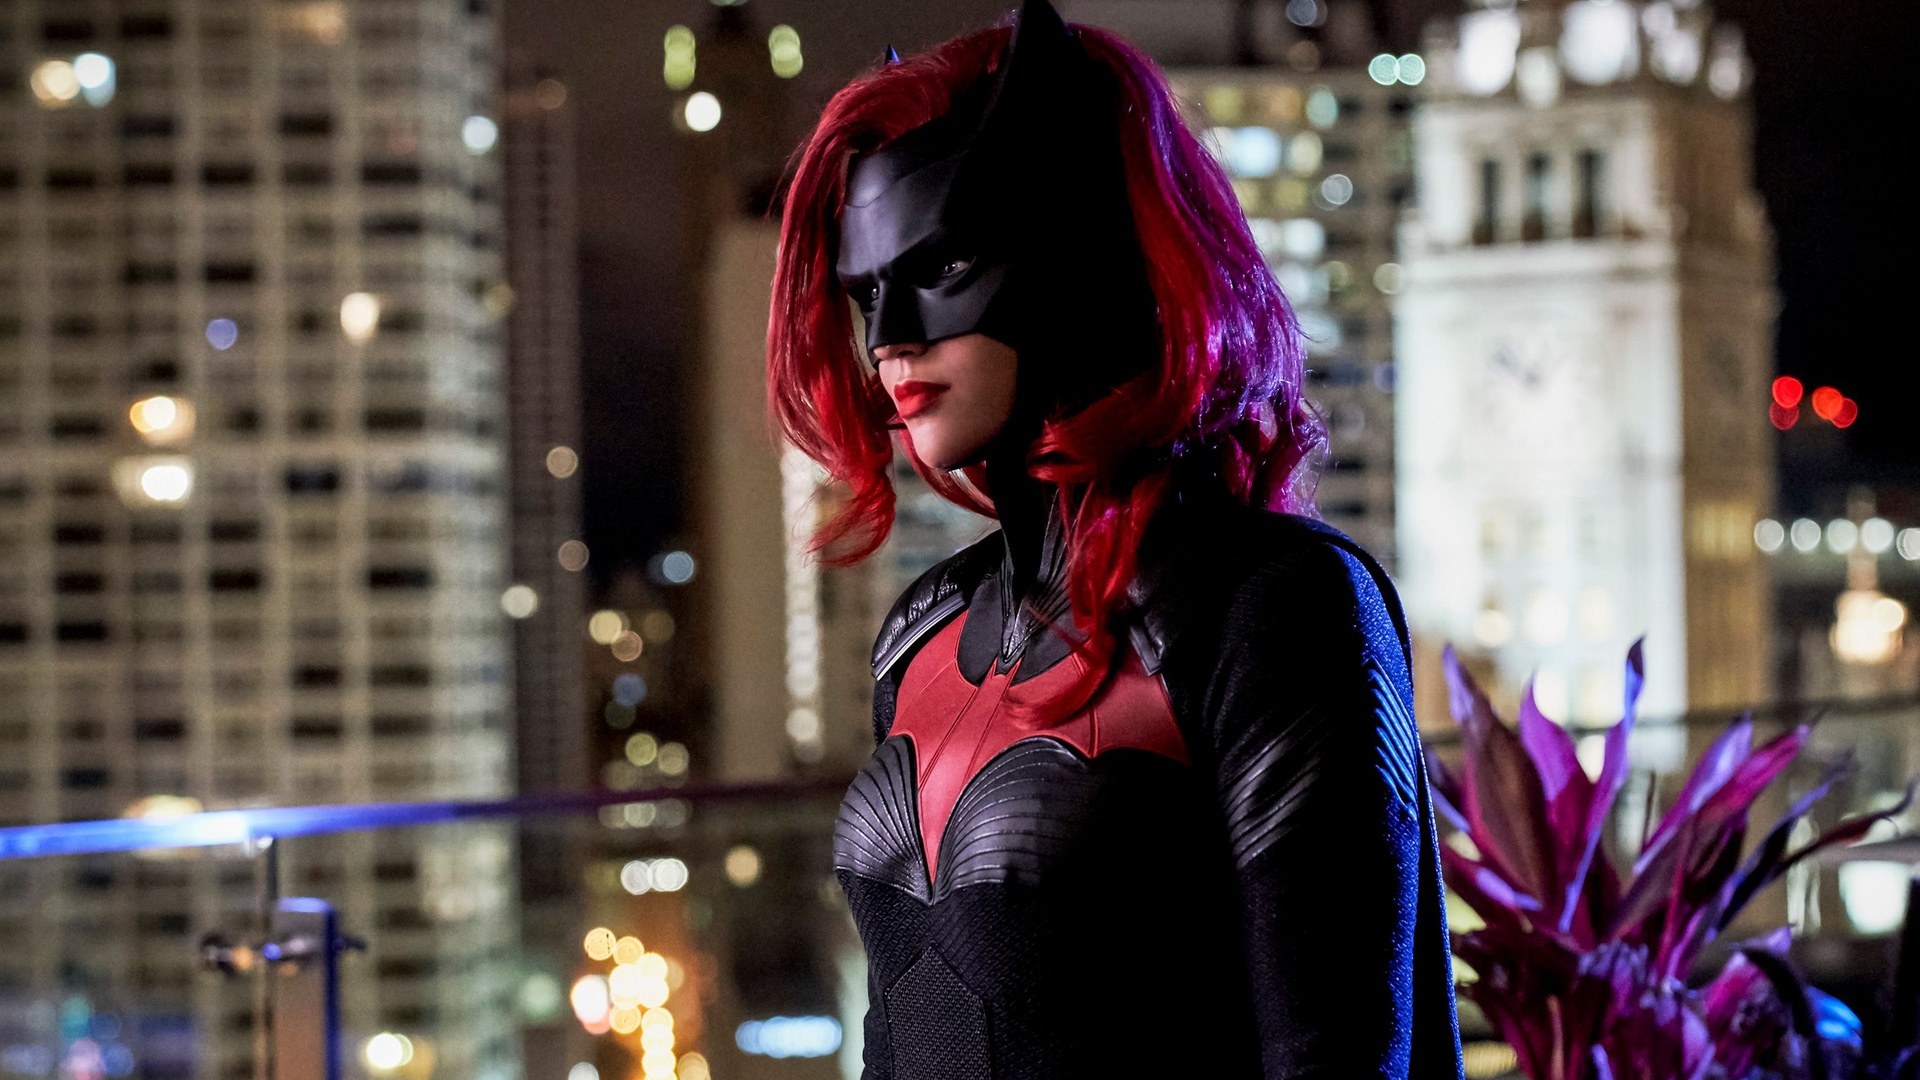 Ruby Rose Exits The CW's 'Batwoman' After 1 Season – Rogue Rocket